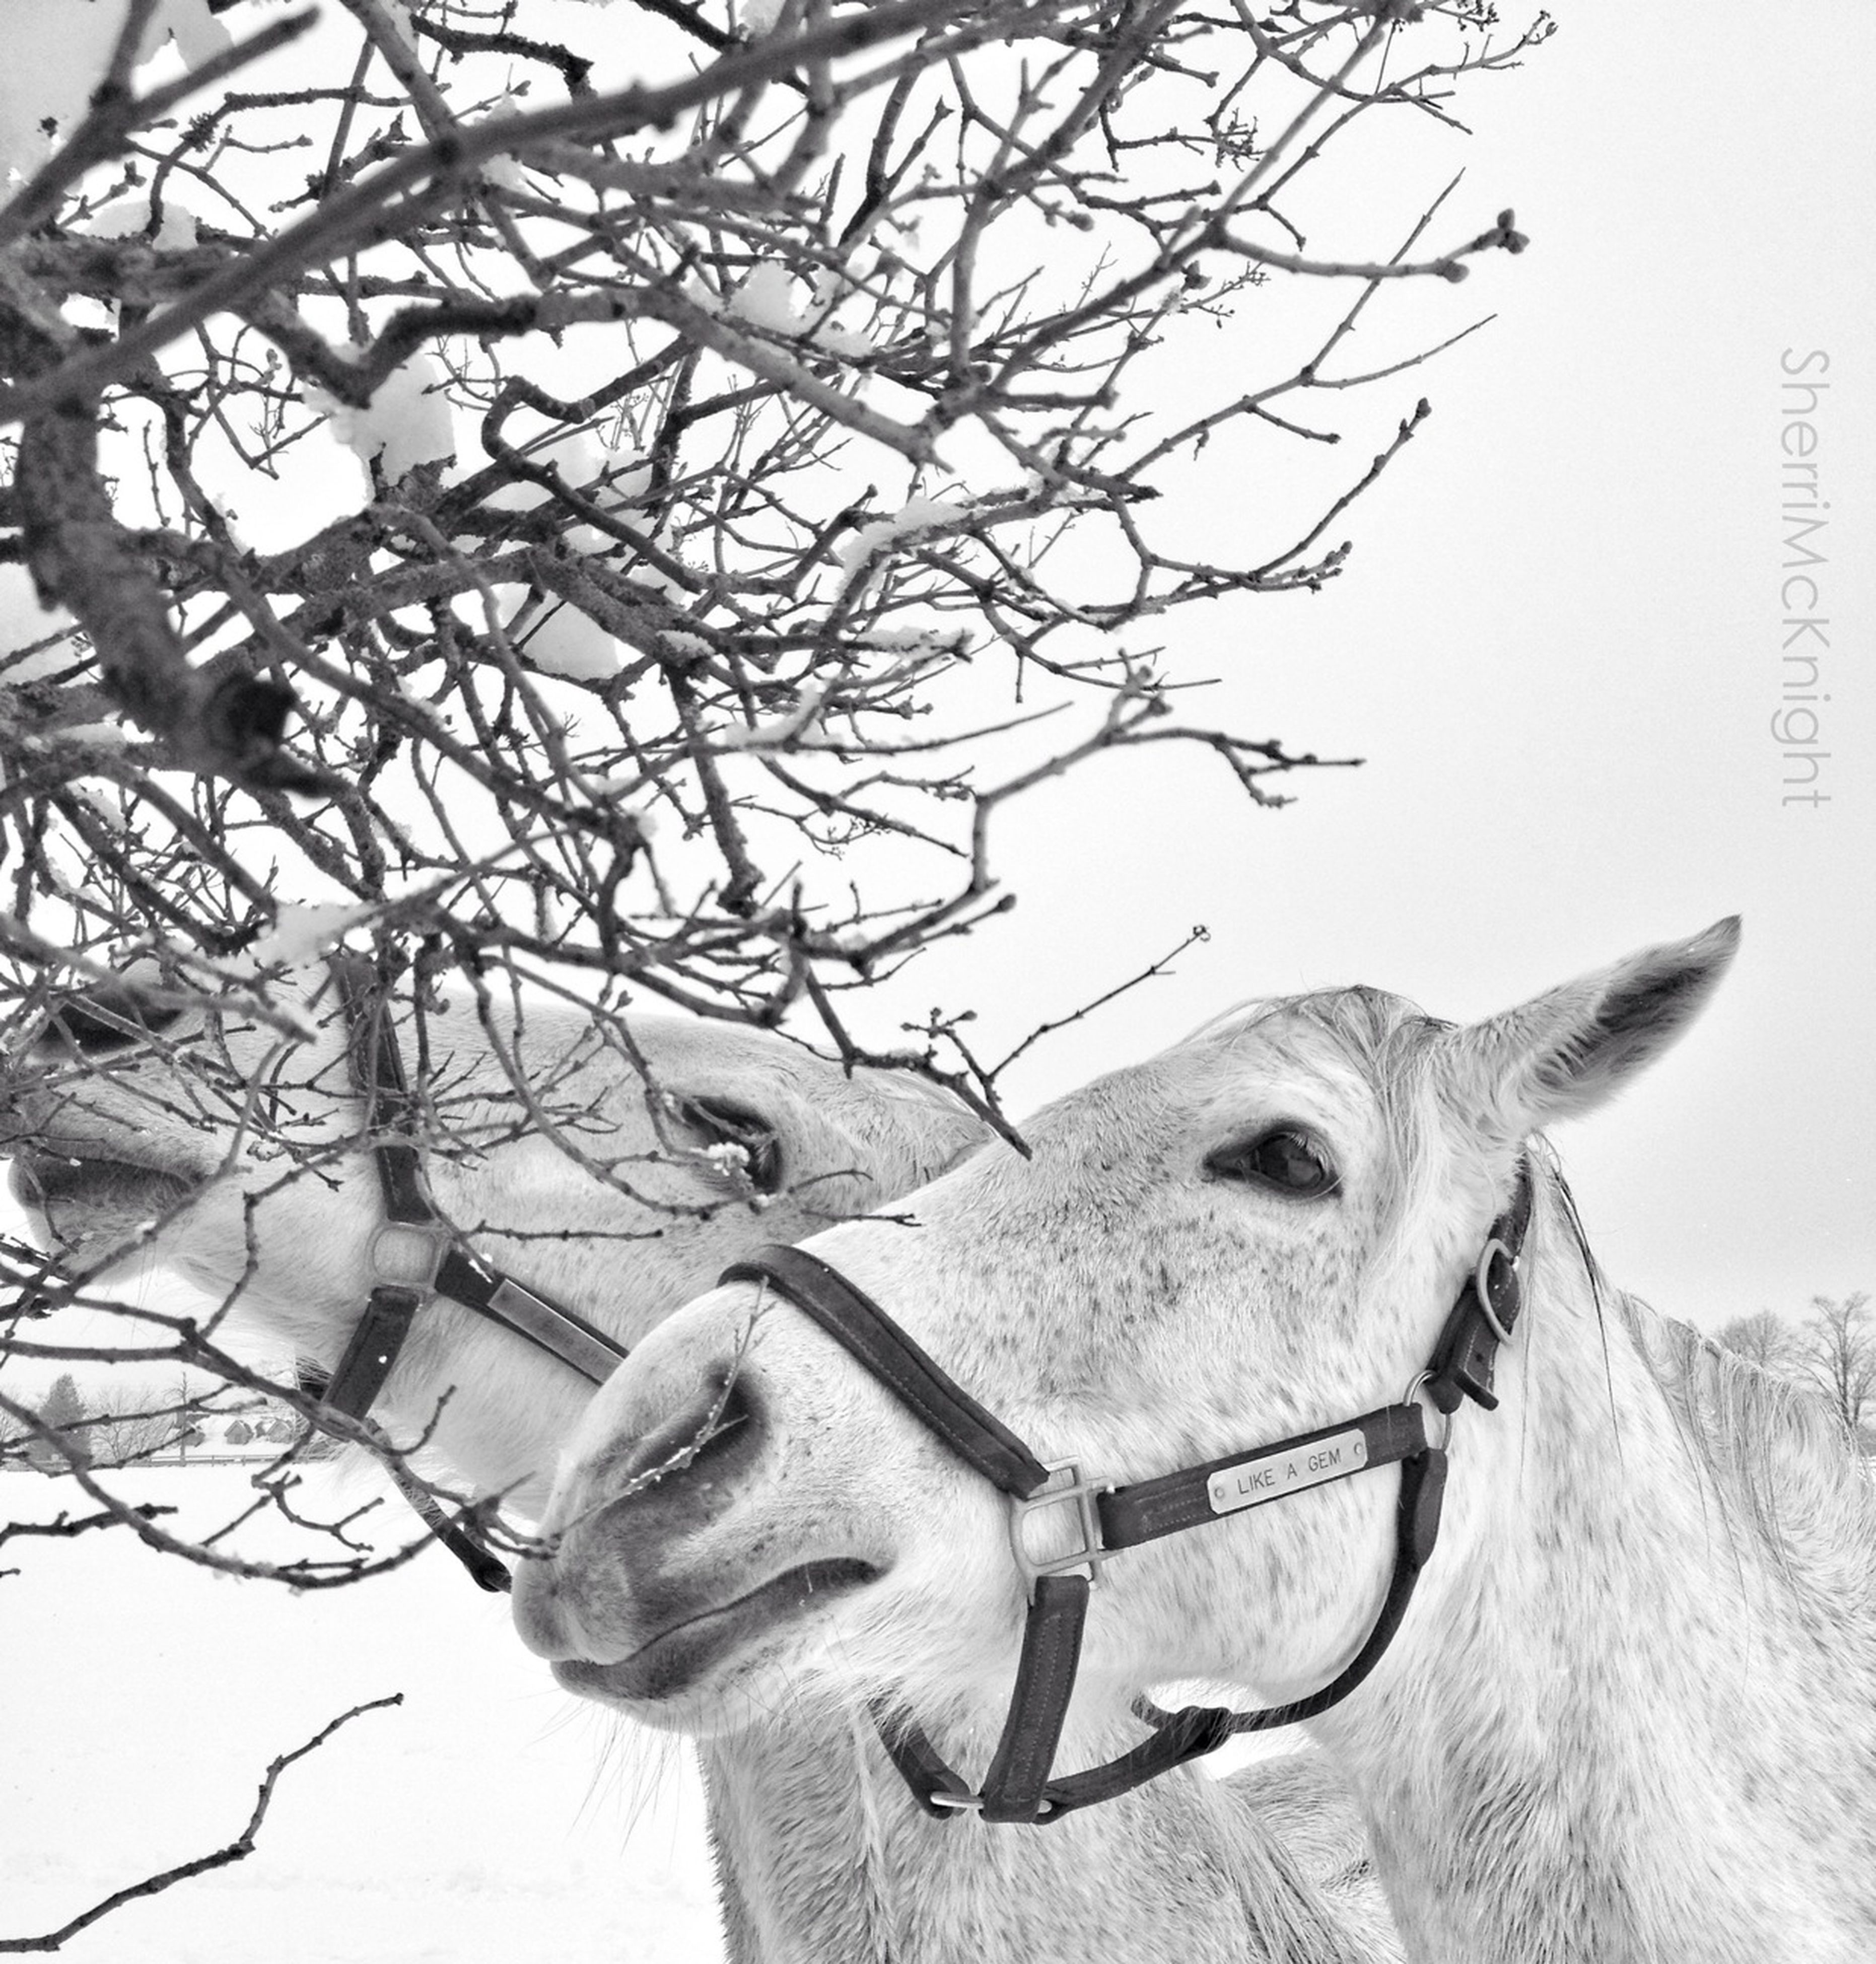 horse, animal themes, one animal, bare tree, livestock, clear sky, herbivorous, mammal, working animal, art and craft, outdoors, day, art, sky, tree, sculpture, part of, horned, bridle, animal representation